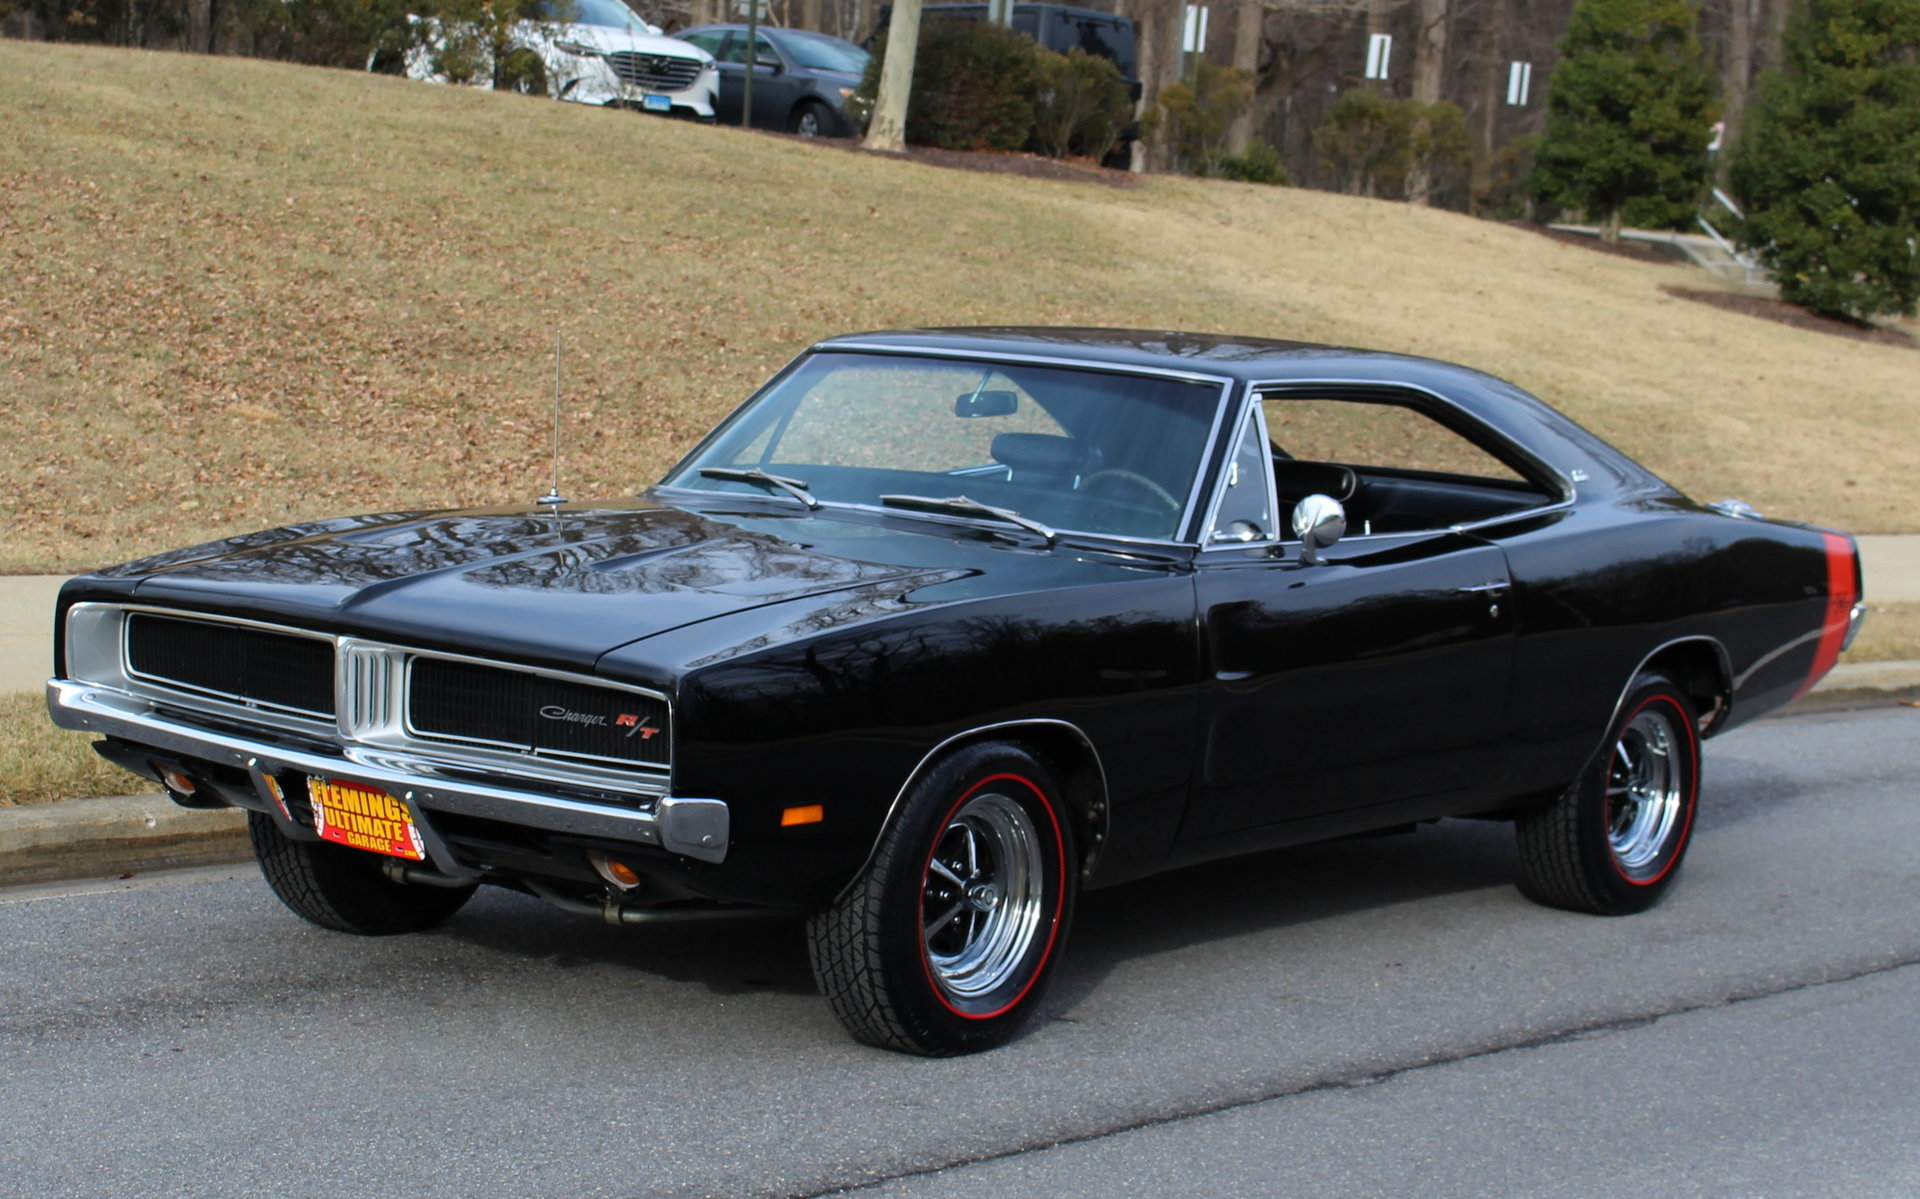 1969 Dodge Charger 440 R/T SE R/T SE for sale #77521 | MCG